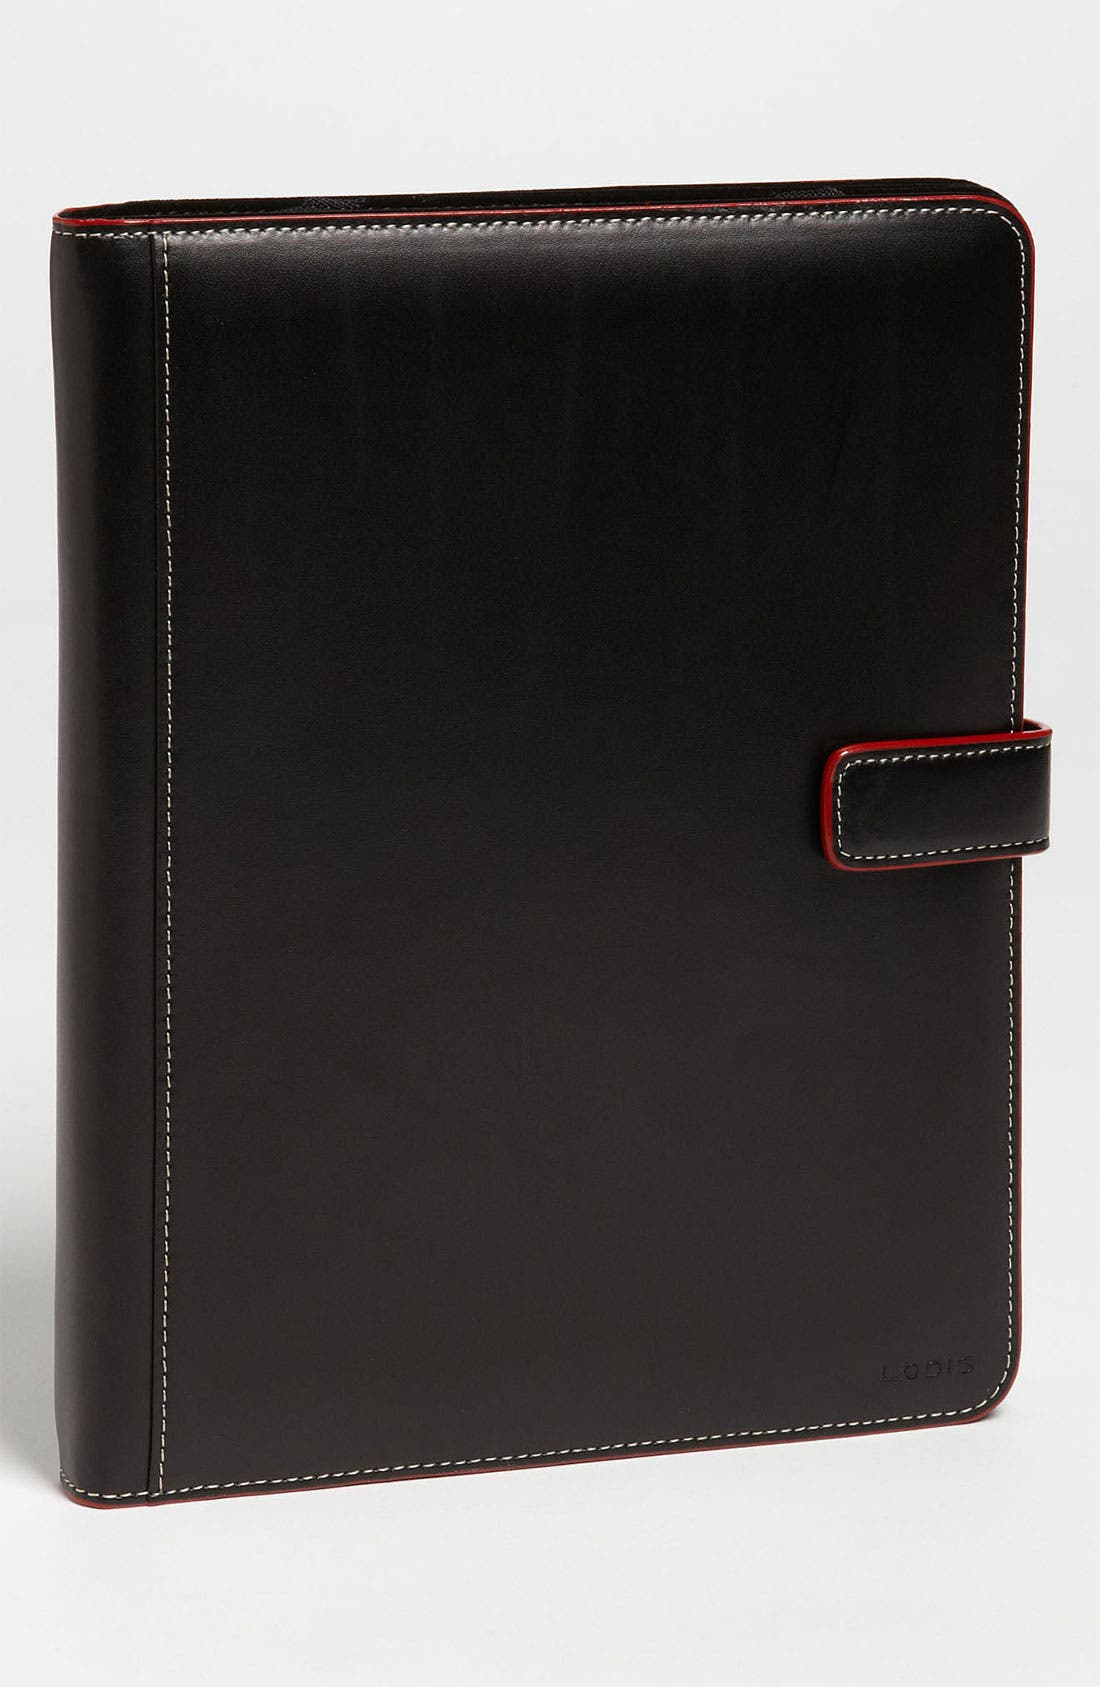 LODIS LOS ANGELES,                             Lodis 'Sylvie Swivel' iPad Case,                             Main thumbnail 1, color,                             001